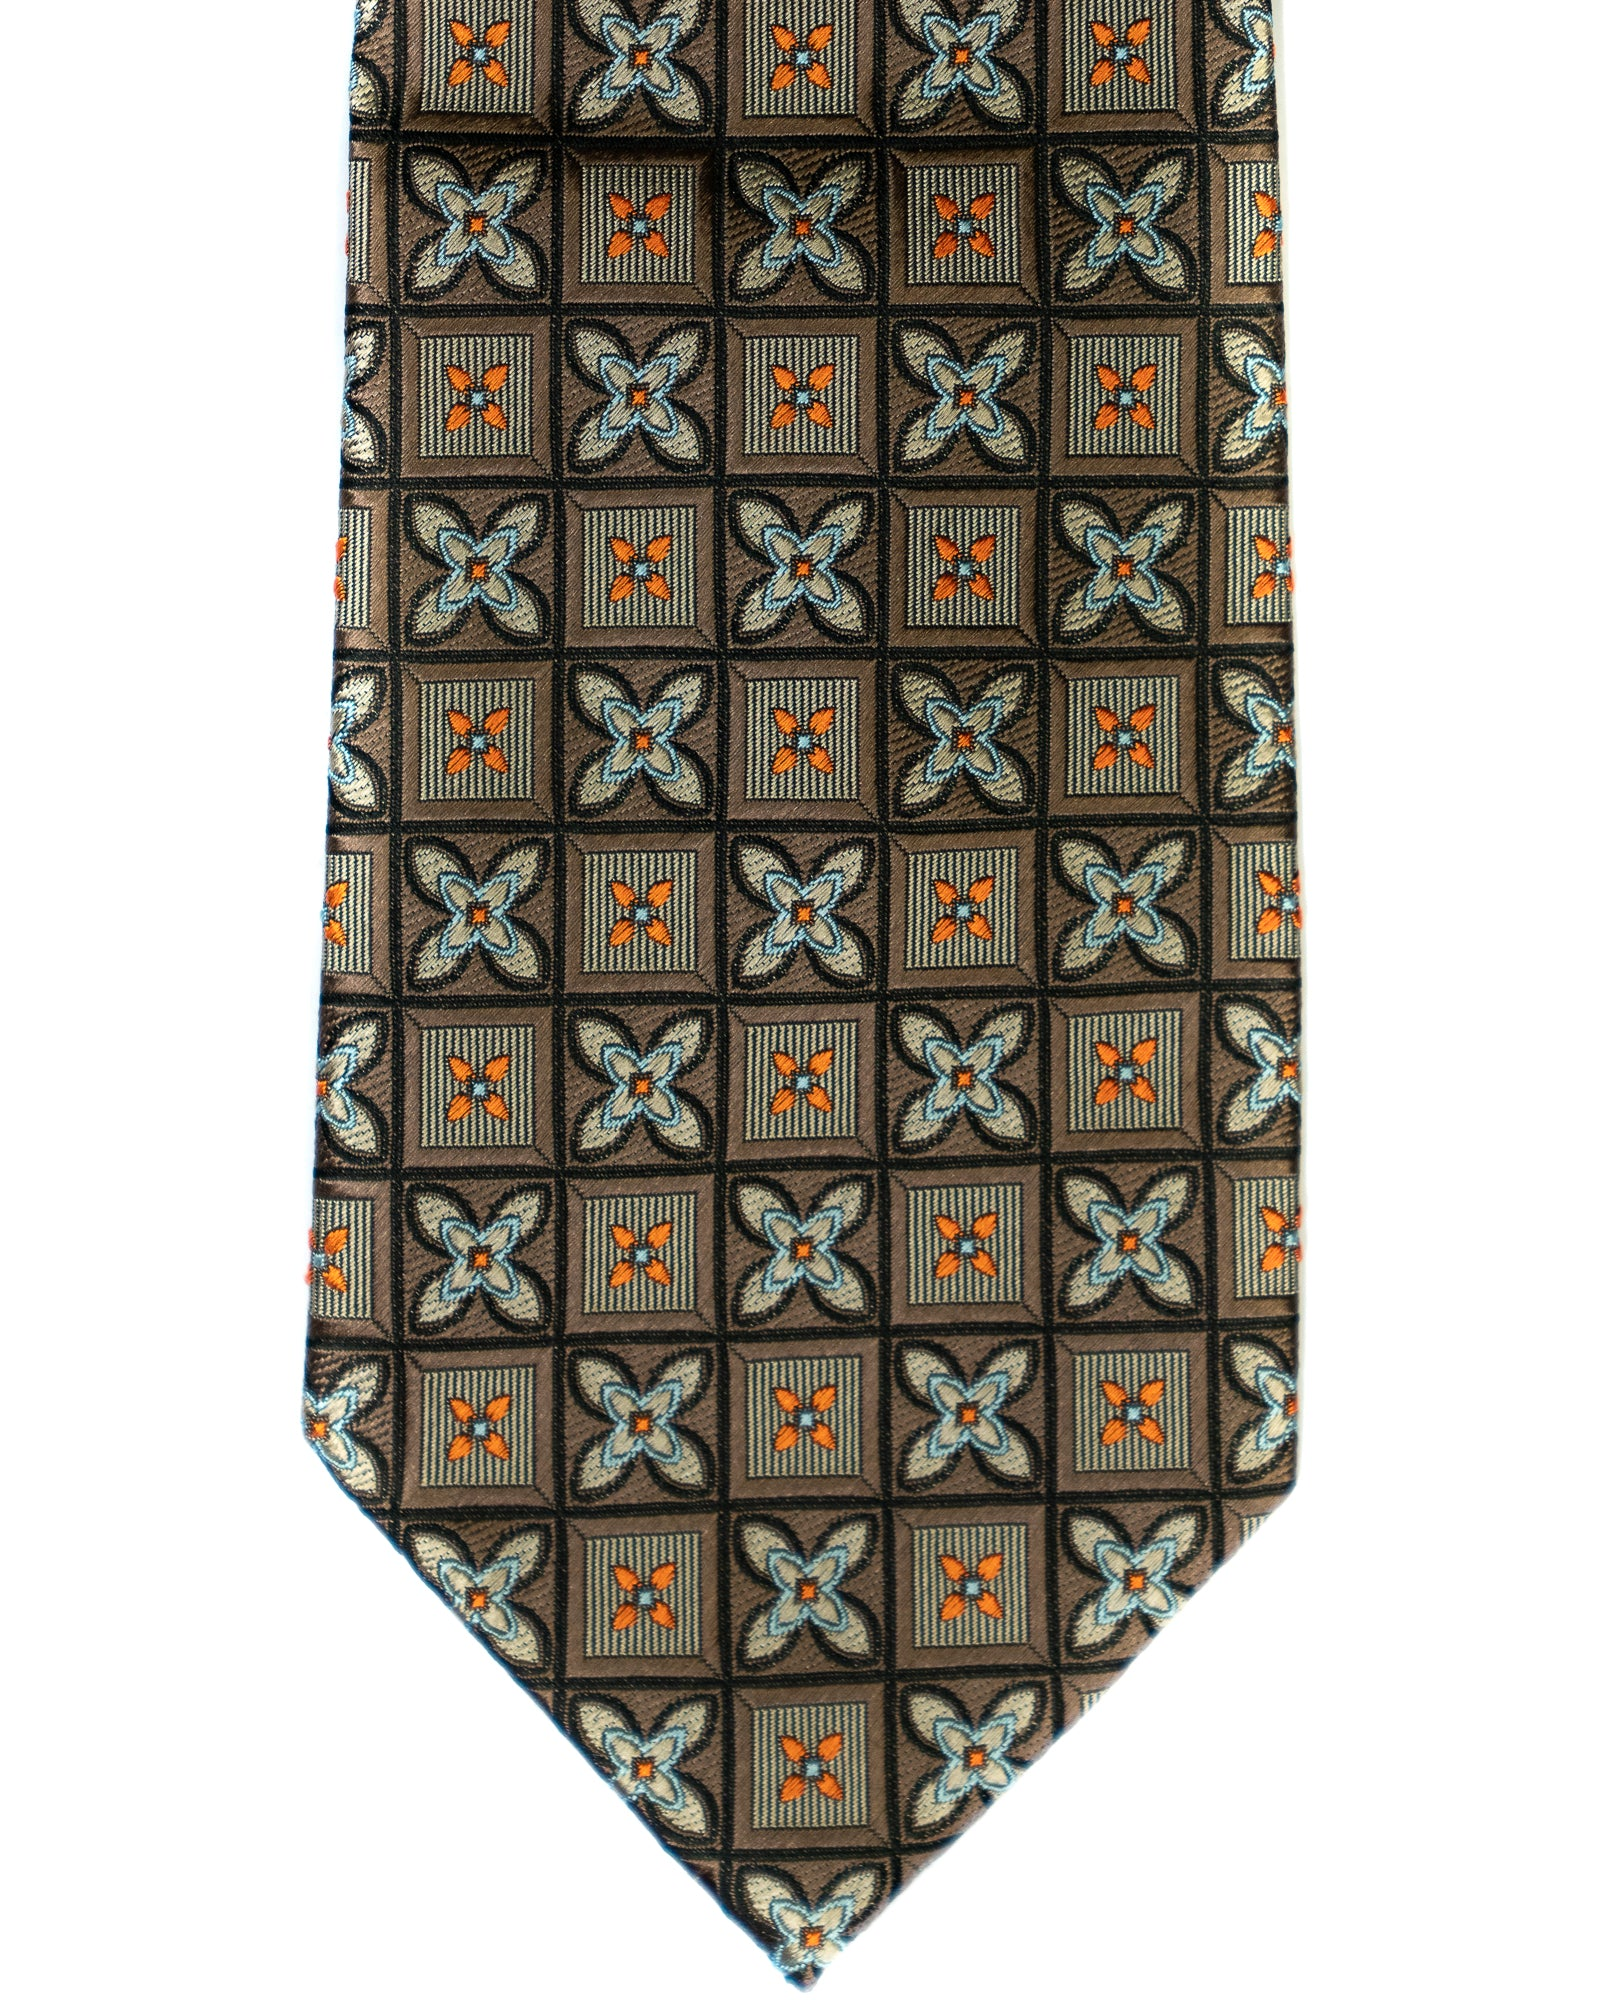 Silk Tie In Brown Foulard Squares Print - Rainwater's